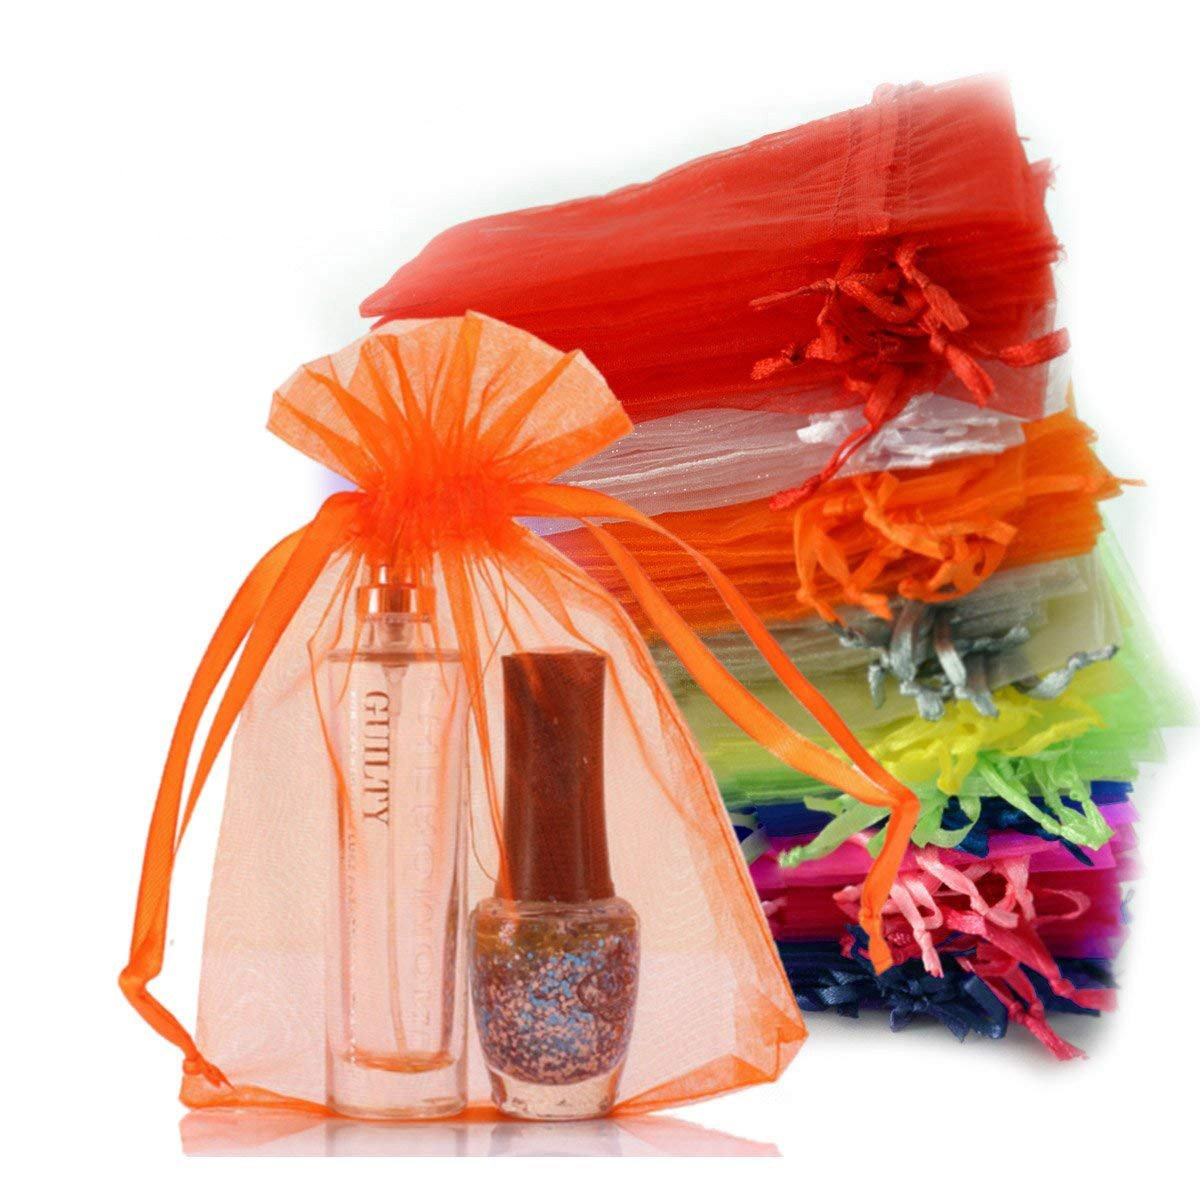 Chasgo 100 Pcs Drawstring Organza Gift Bags 4 x 6 Pouch Wedding Party Favor Gift Candy Jewelry Wrapping Bags